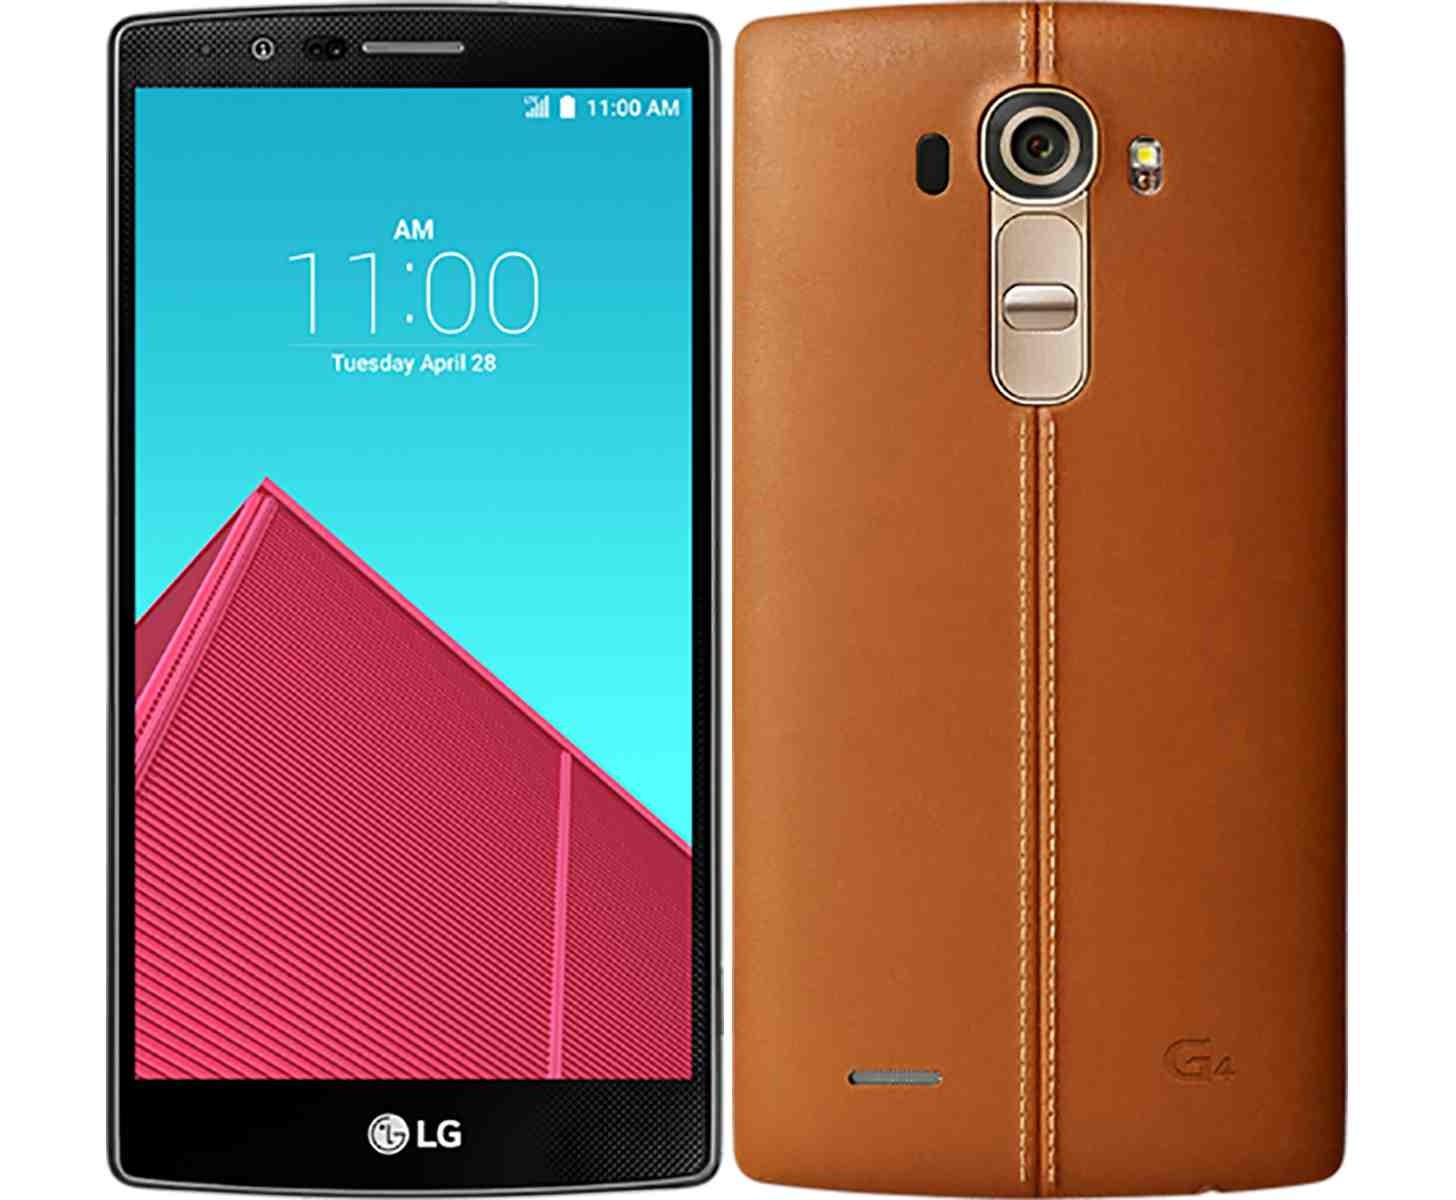 http://smartphone2016.com/wp-content/uploads/2015/09/LG-G4-Specs-Outstanding-IPS-LCD-Display-Amazing-16-MP-Rear-Camera-and-High-Performance-Qualcomm-Snapdragon-